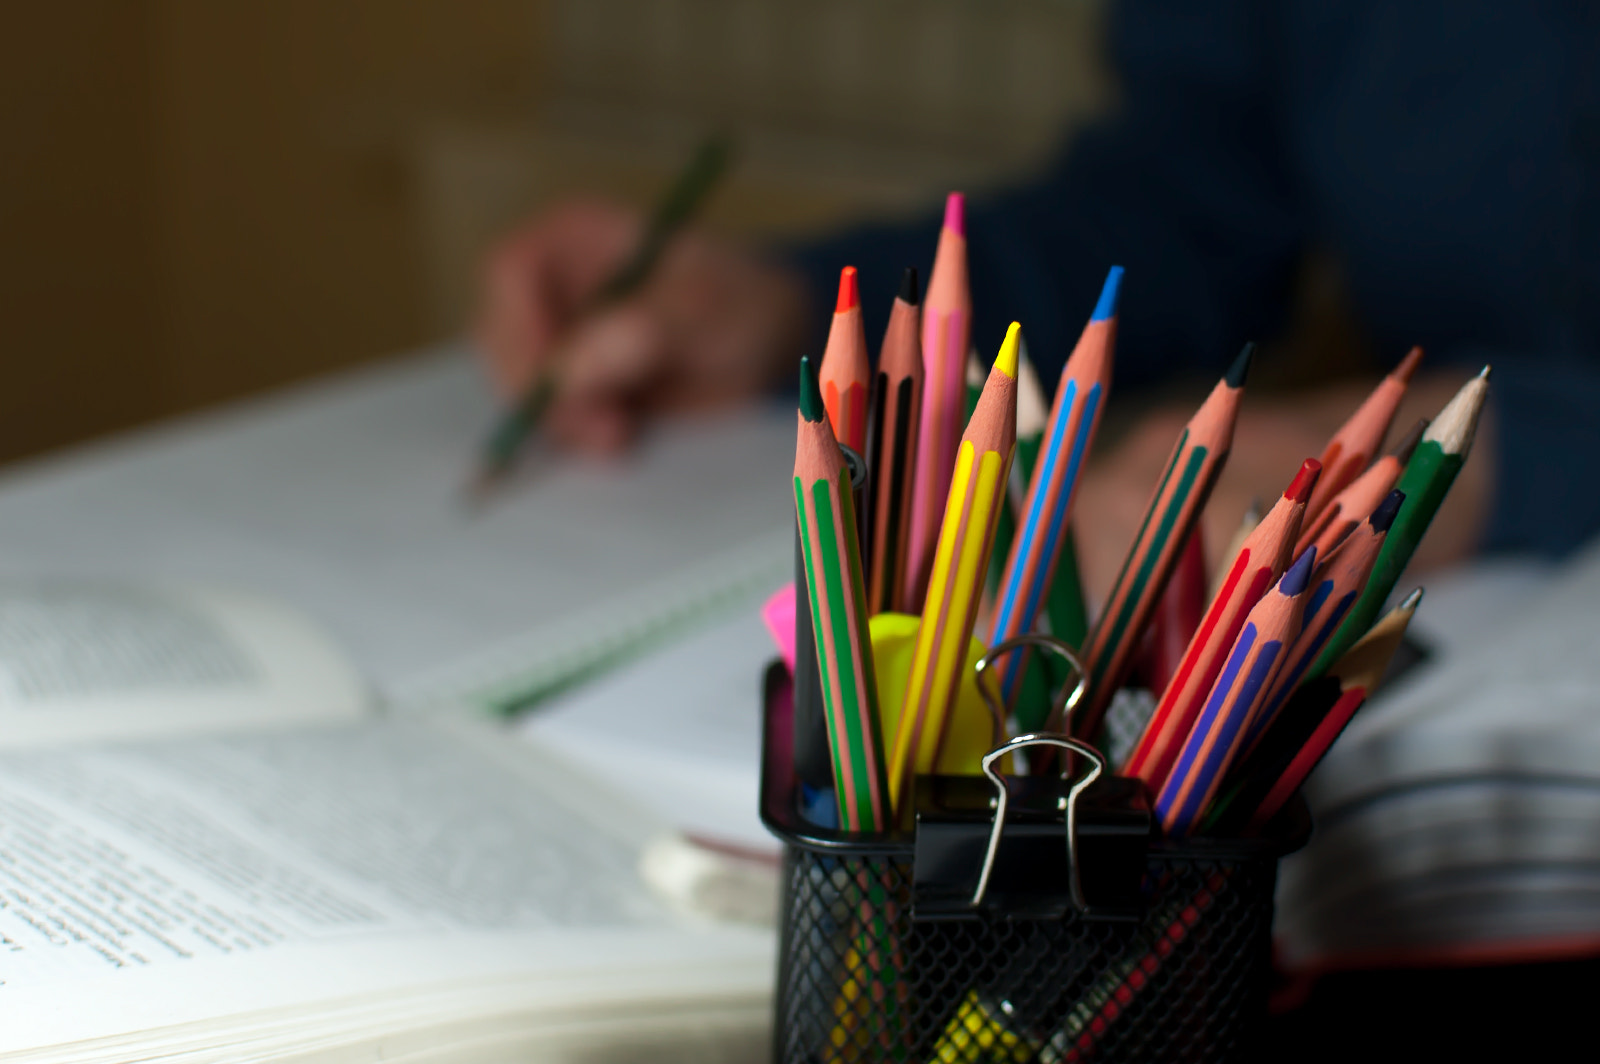 Photograph Colorful studying by Yane Naumoski on 500px